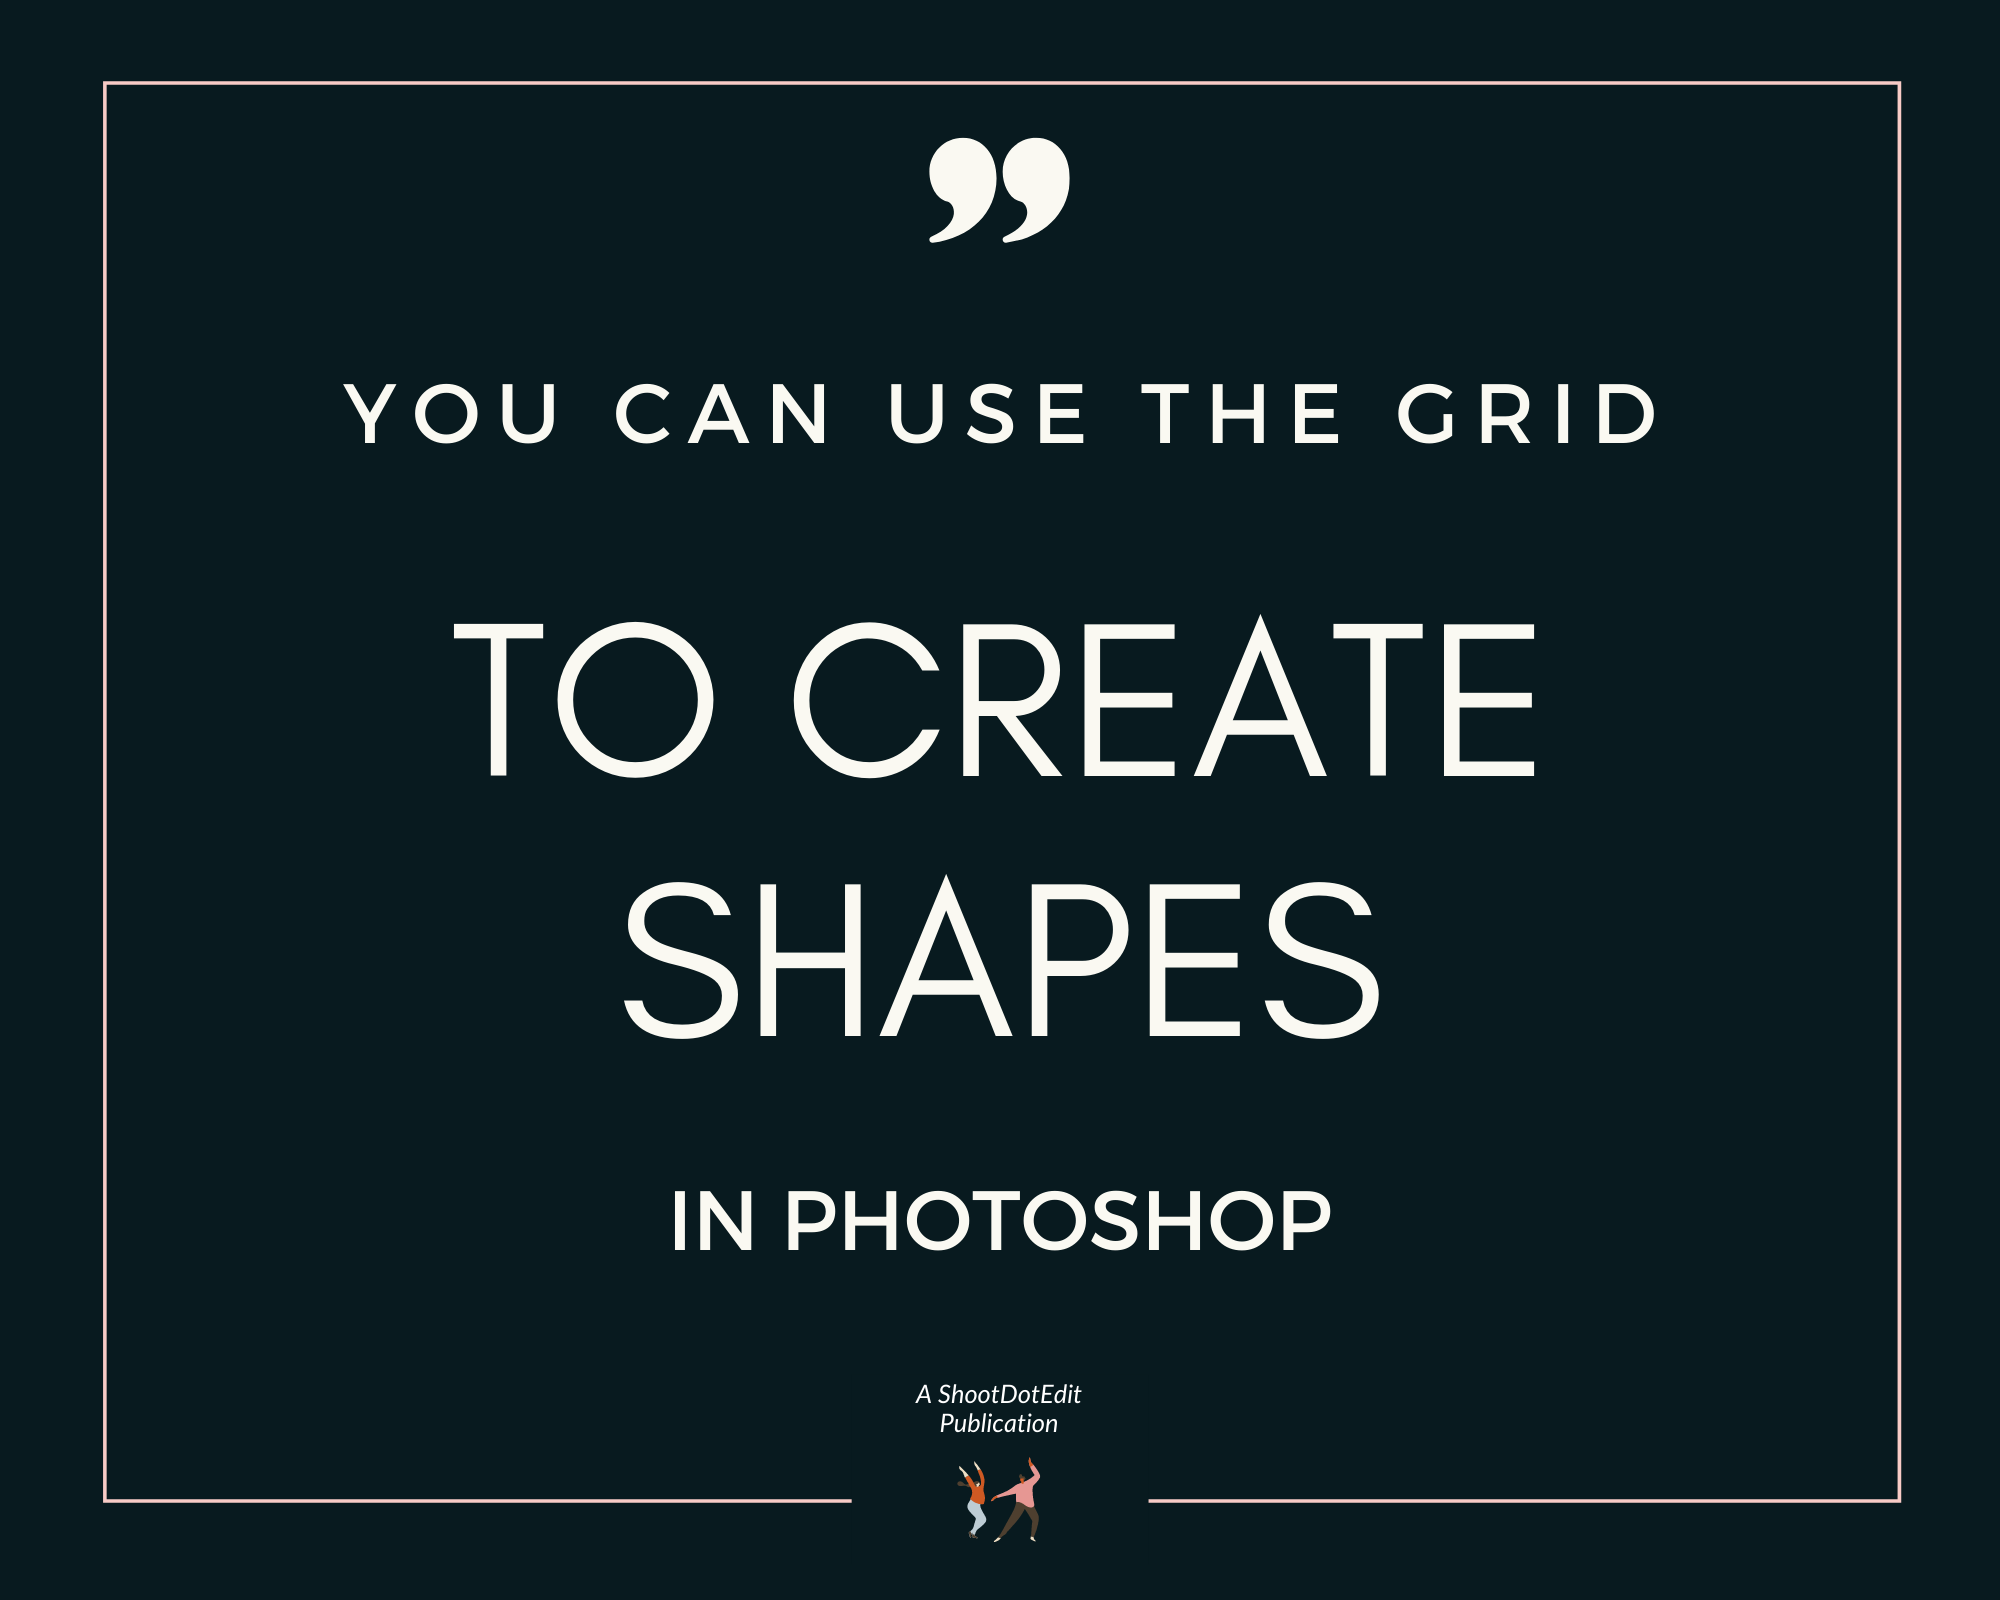 Infographic stating you can use the grid to create shapes